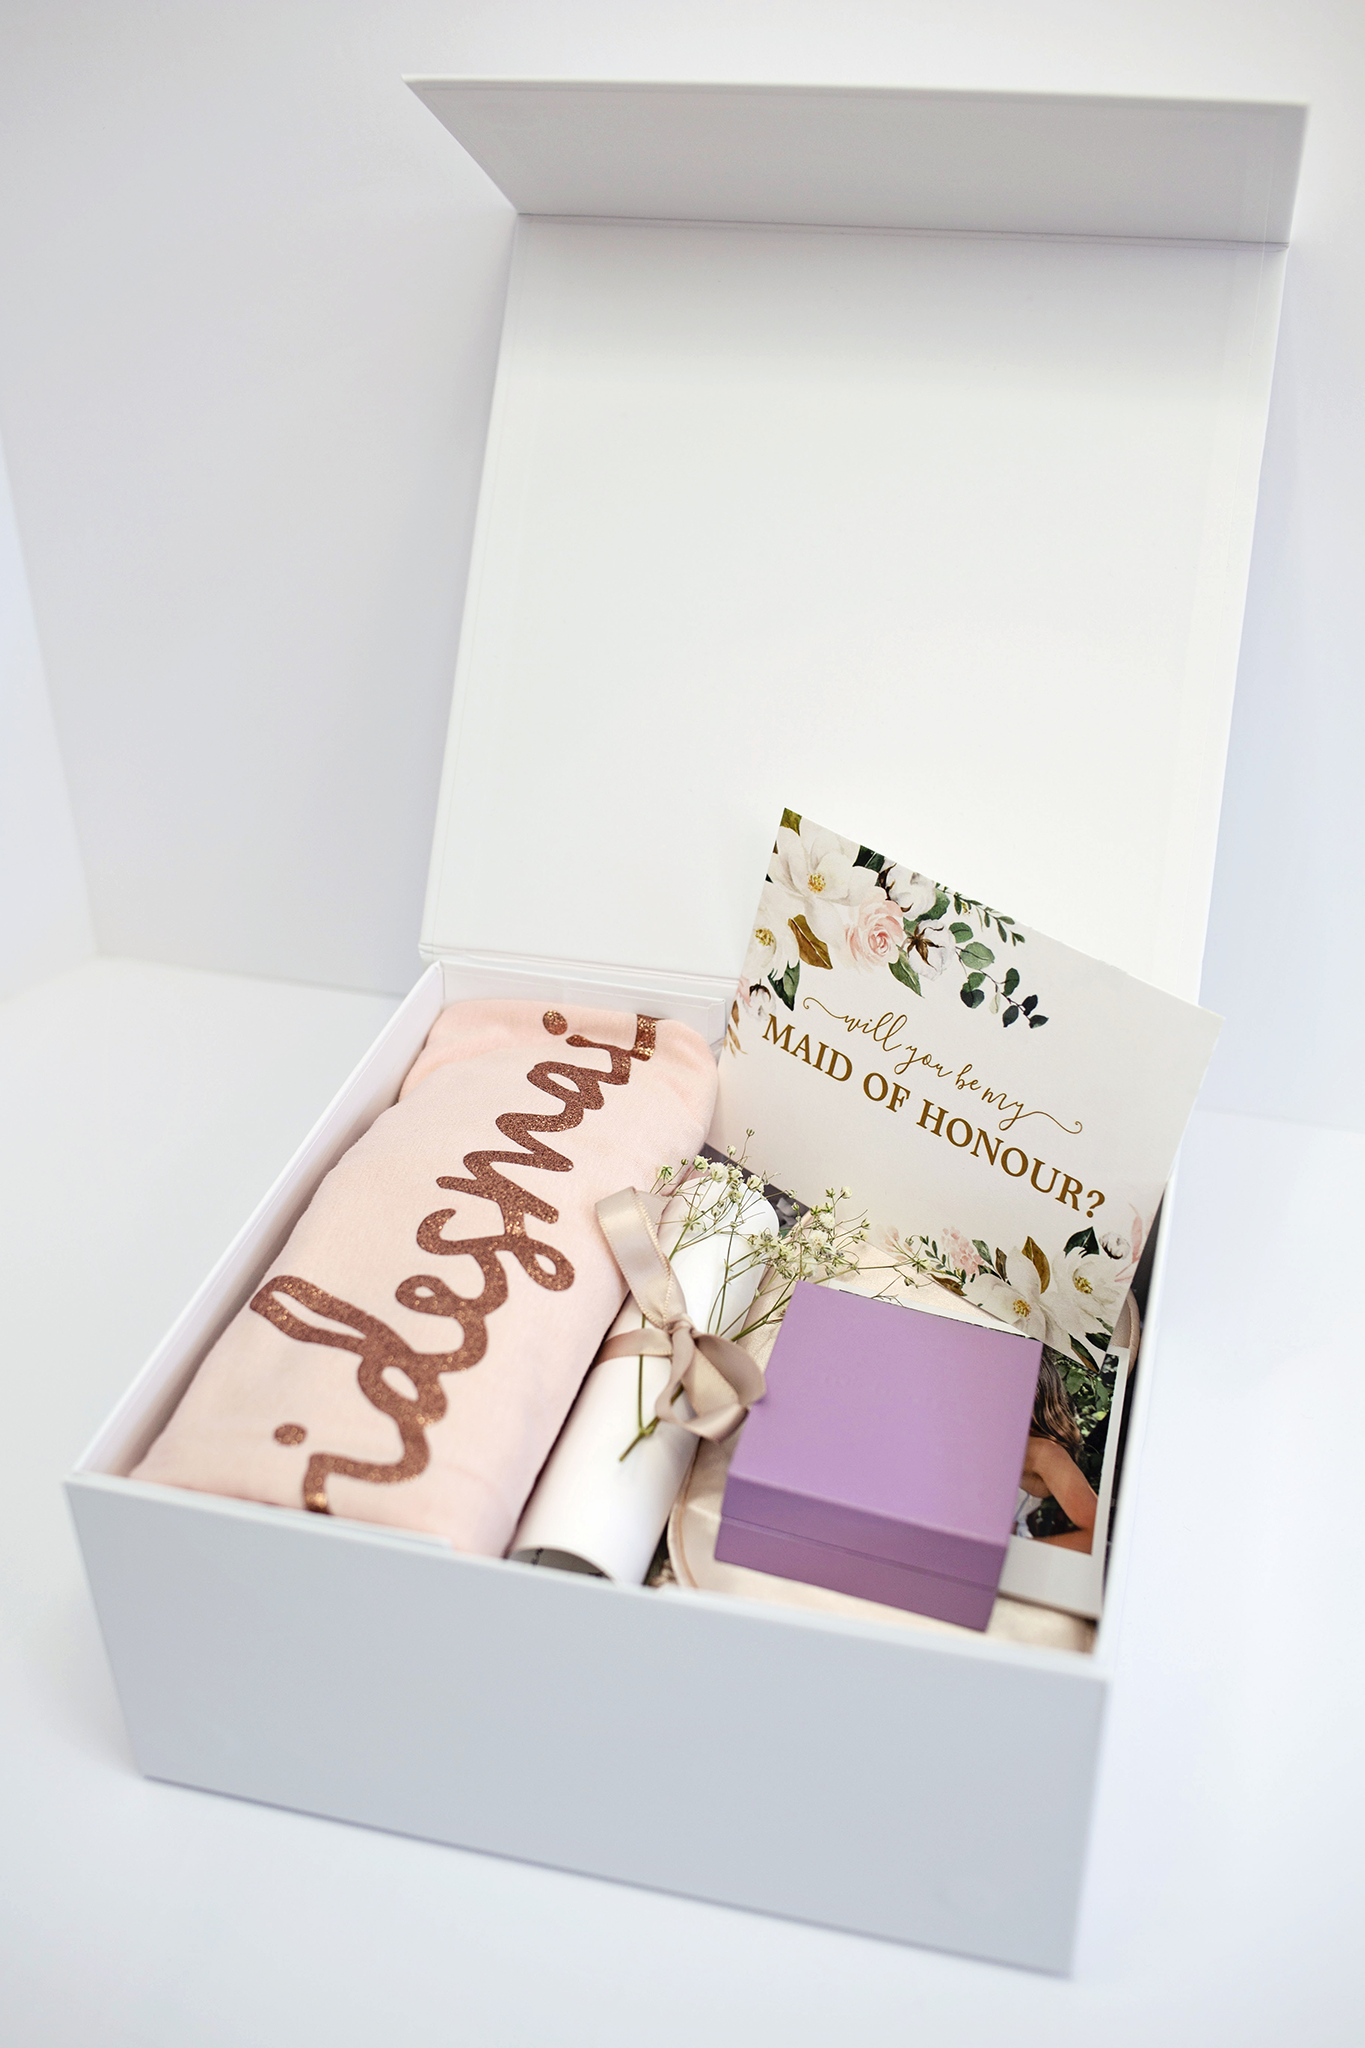 Finished maid of honour proposal box